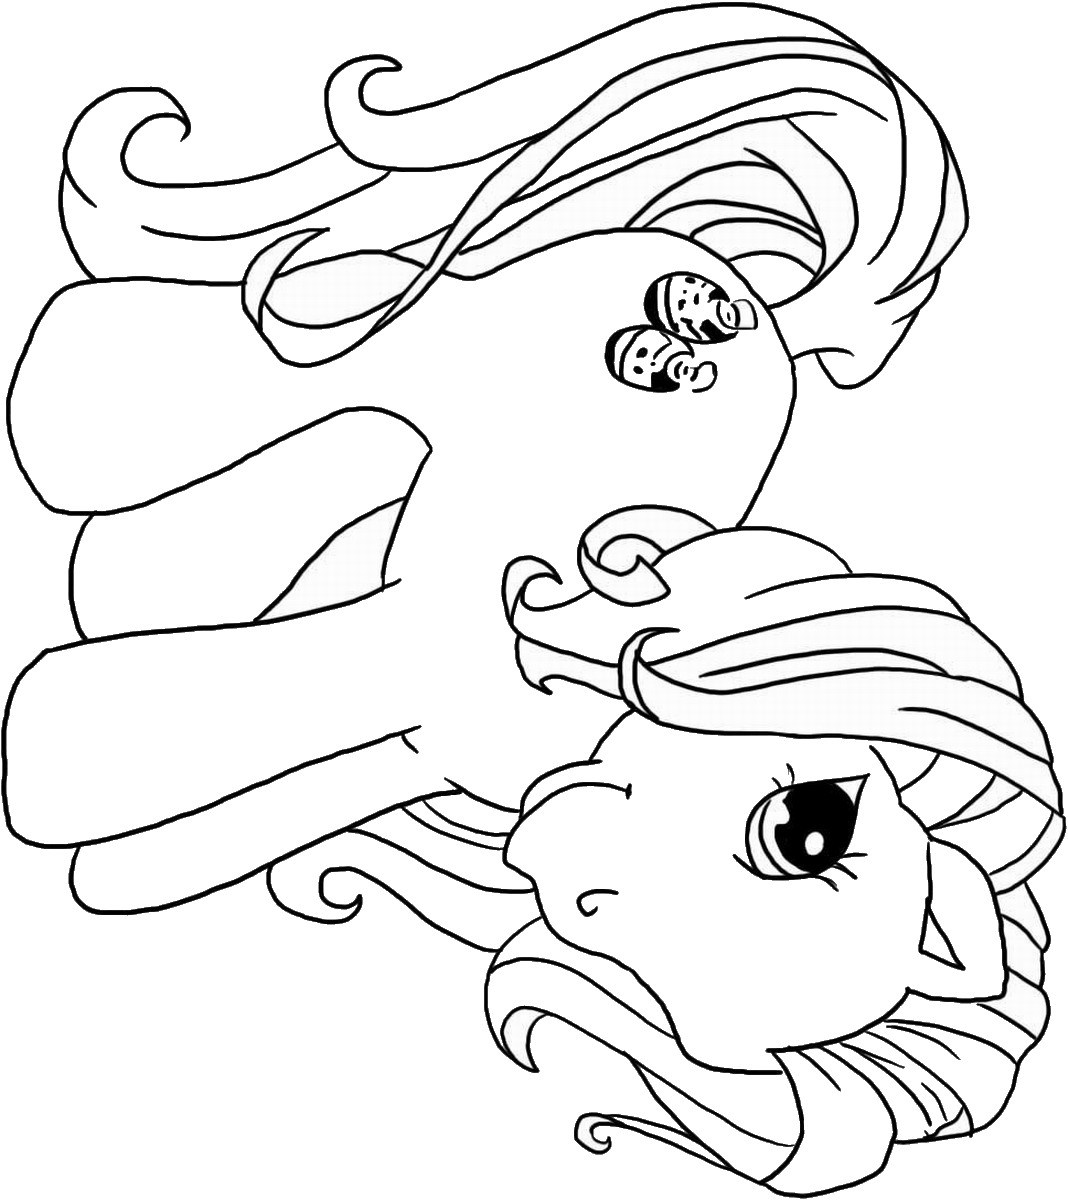 my little pony coloring printables my little pony coloring pages squid army printables coloring pony my little